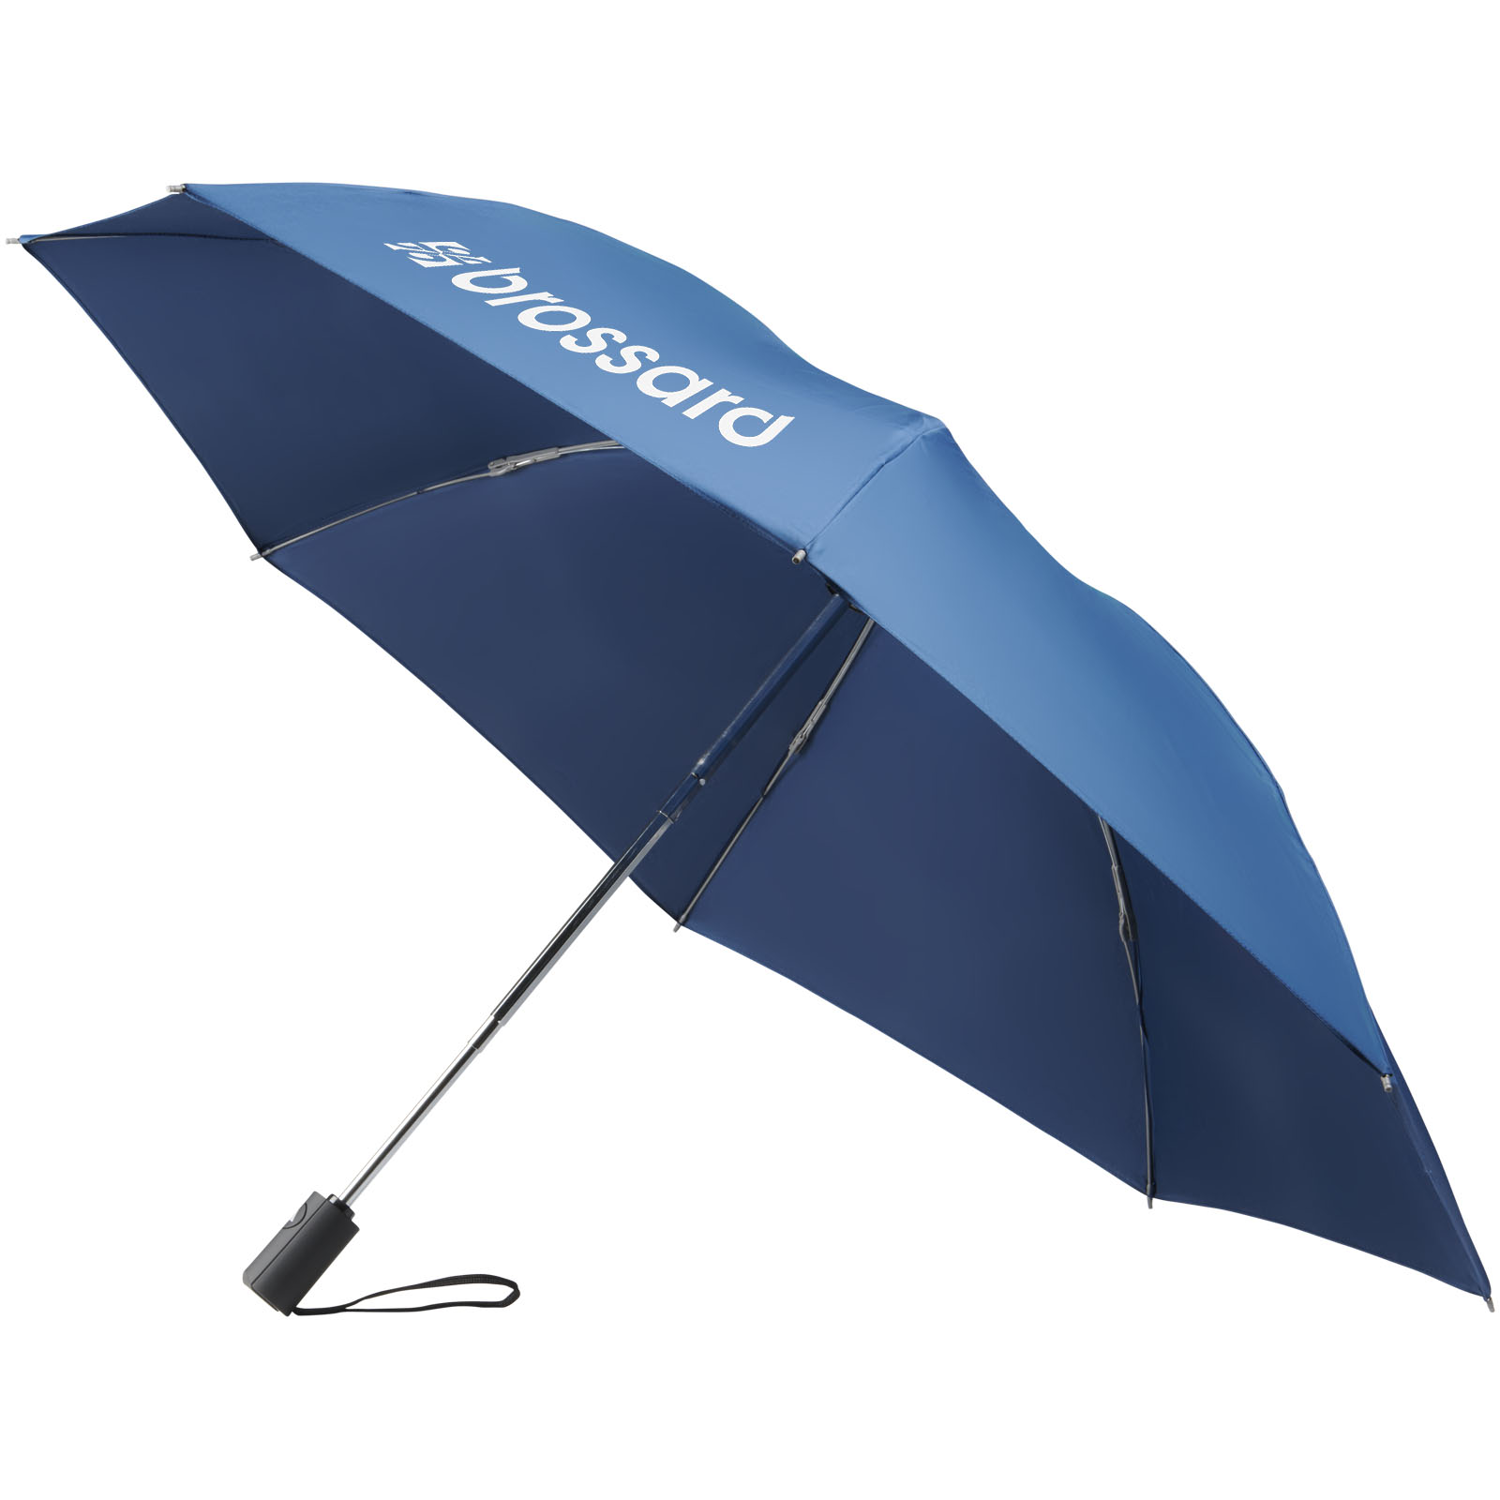 Callao 23Inch Foldable Auto Open Reversible Umbrella